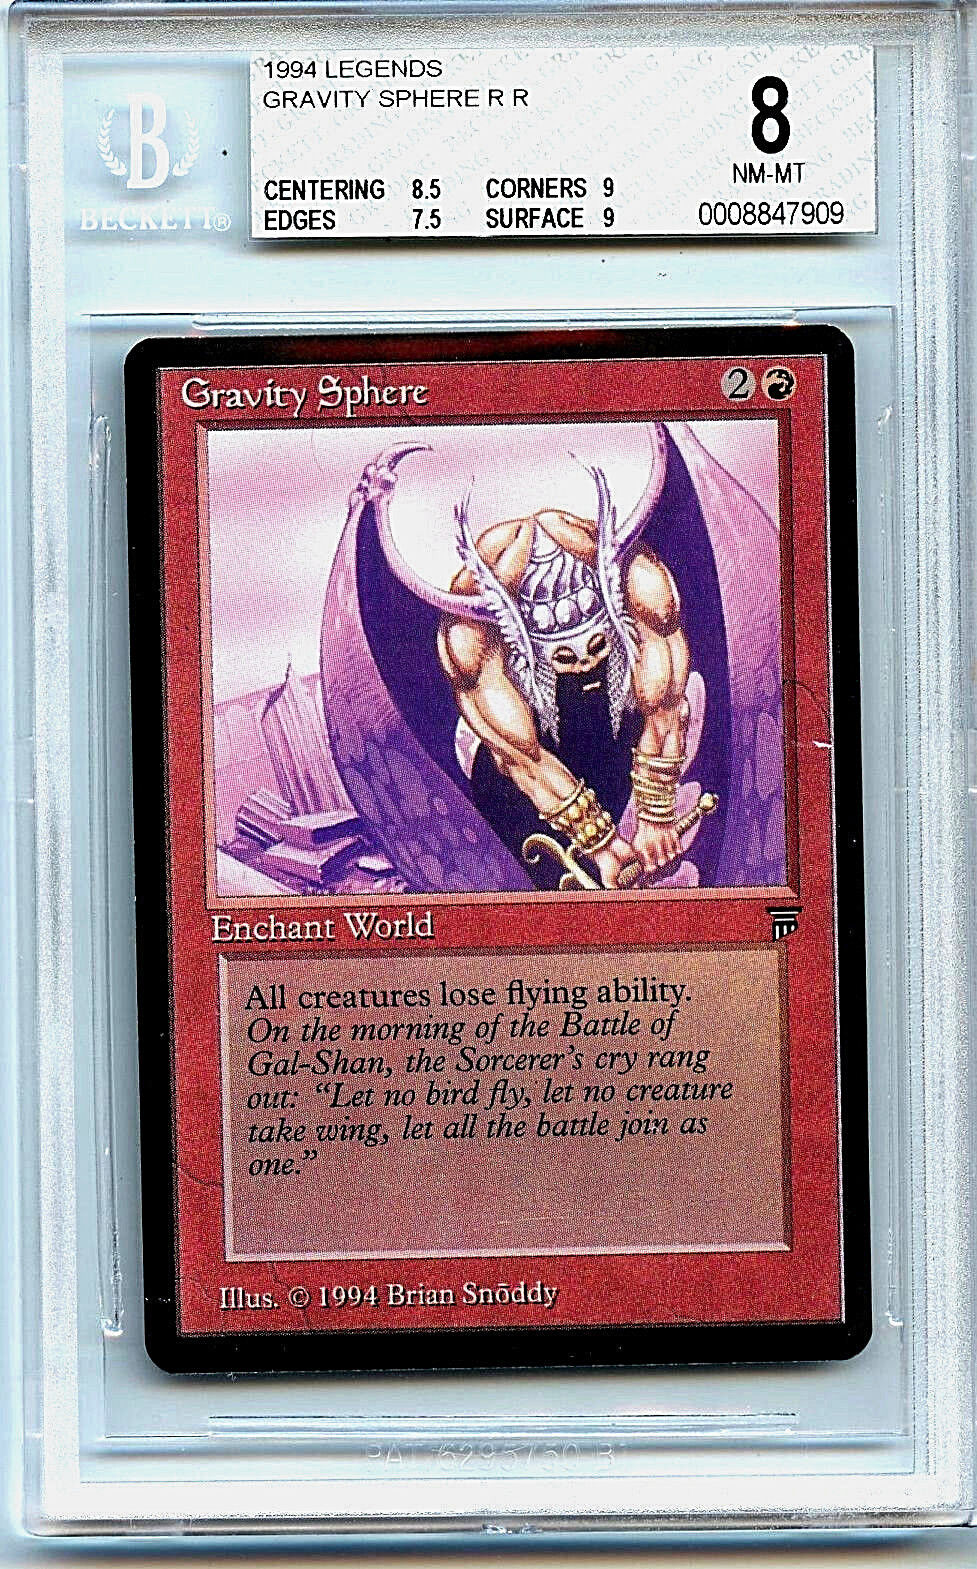 MTG Legends Gravity Sphere BGS 8.0 (8) NM-MT card Magic the Gathering WOTC 7909